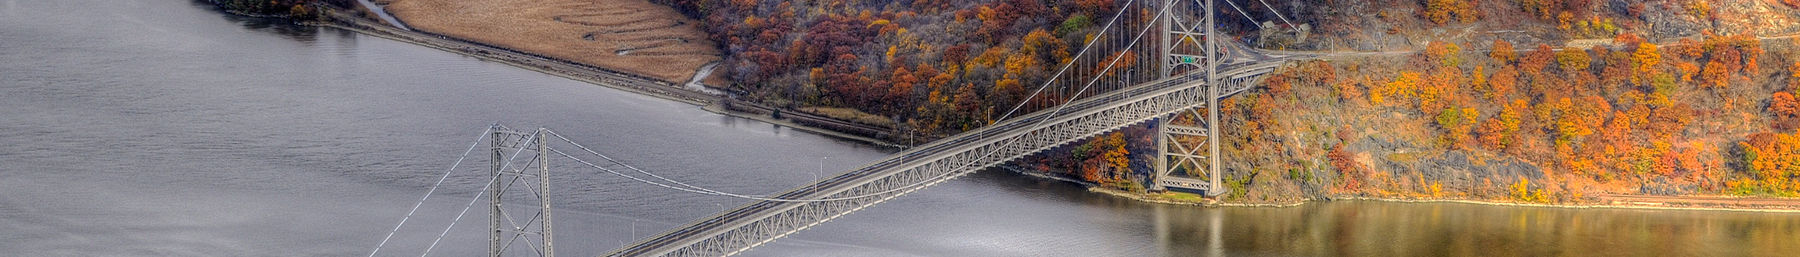 Bear Mountain Bridge over de Hudson rivier